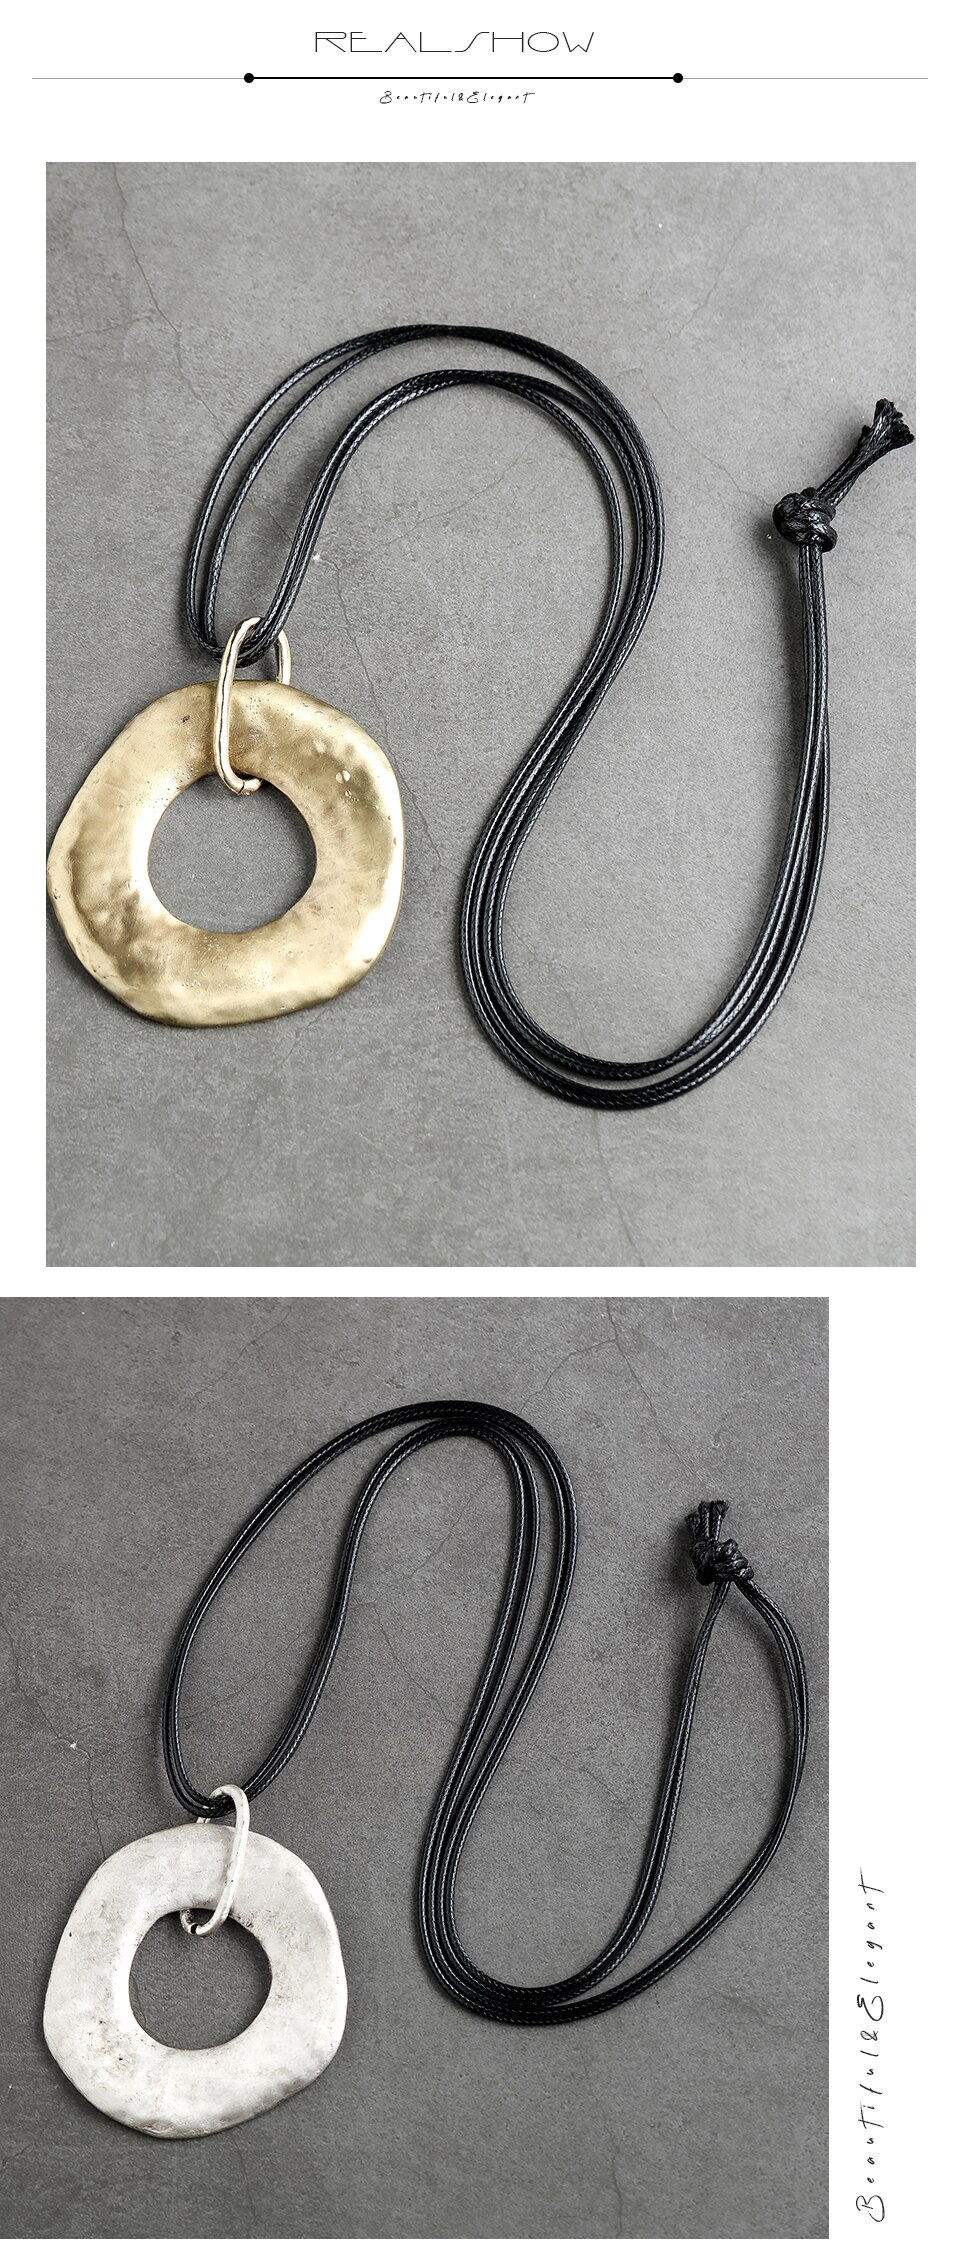 Big Chain Necklace Jewelry Geometric Statement Suspension Handmade Pendant Rope Metal Vintage Unisex Sweater Clothes Accessories